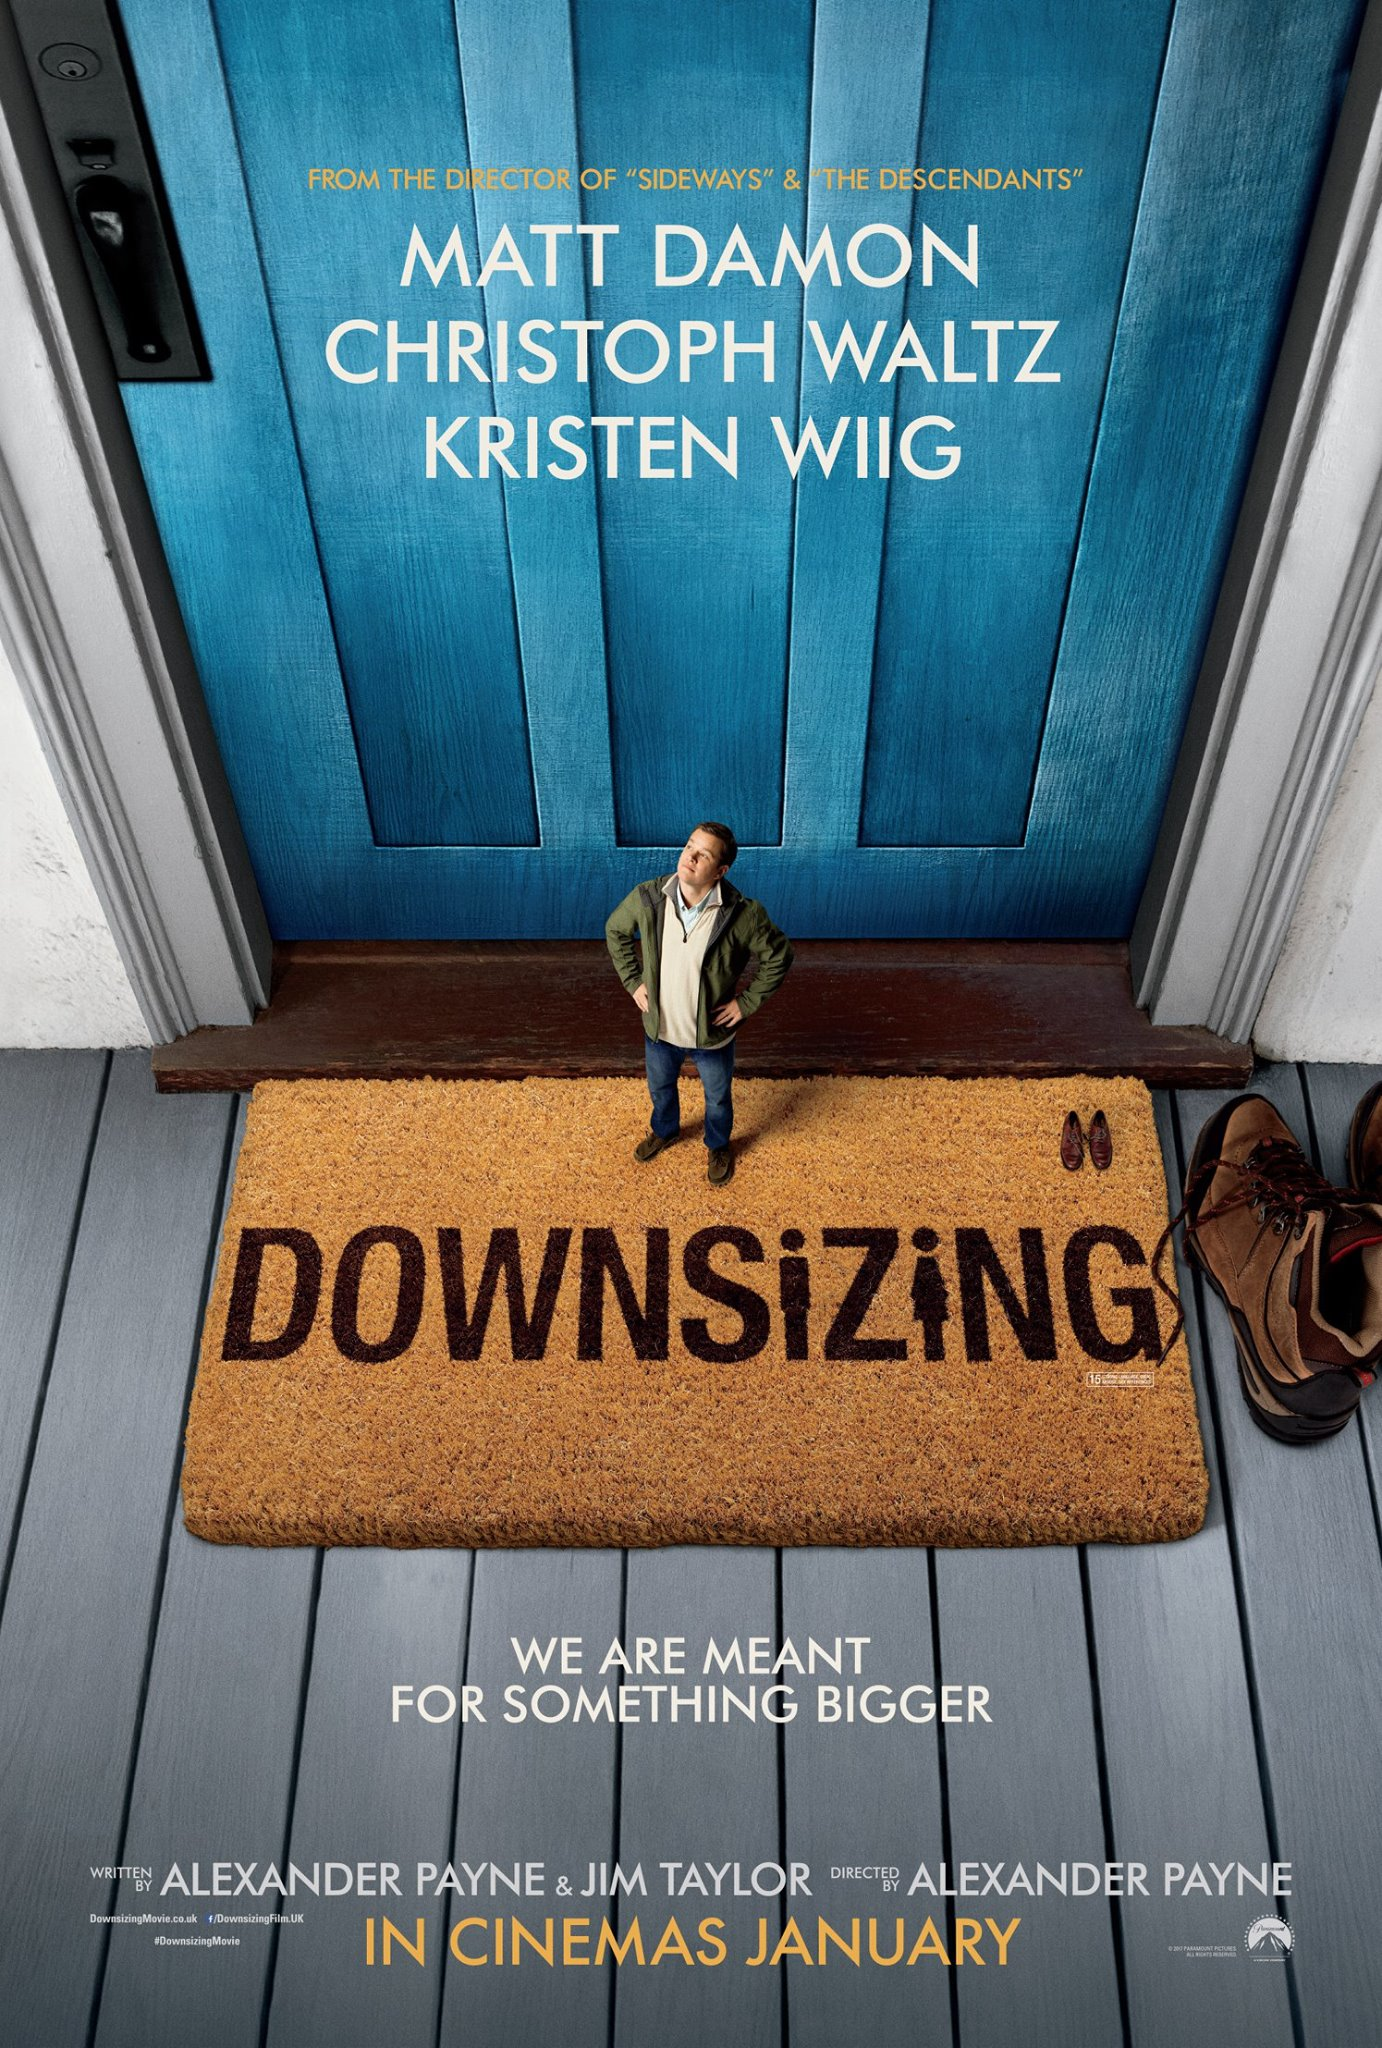 the impact of downsizing on the Introduction this chapter provides a review of downsizing and its impacts on employees the main objective of this chapter is to provide readers wi.